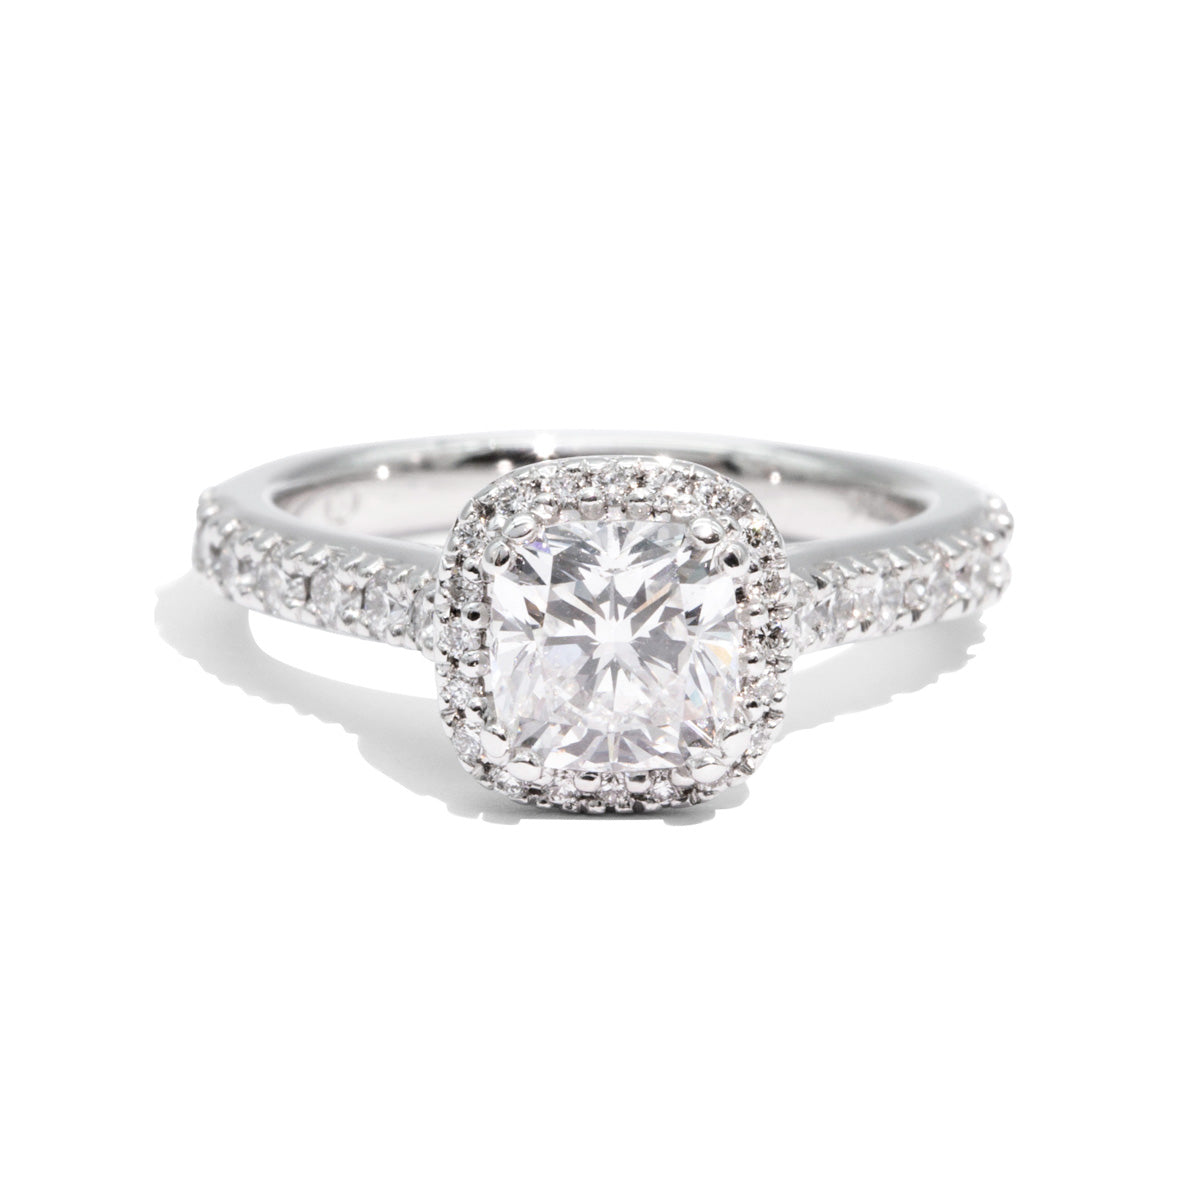 The Felicity Vintage Diamond Ring